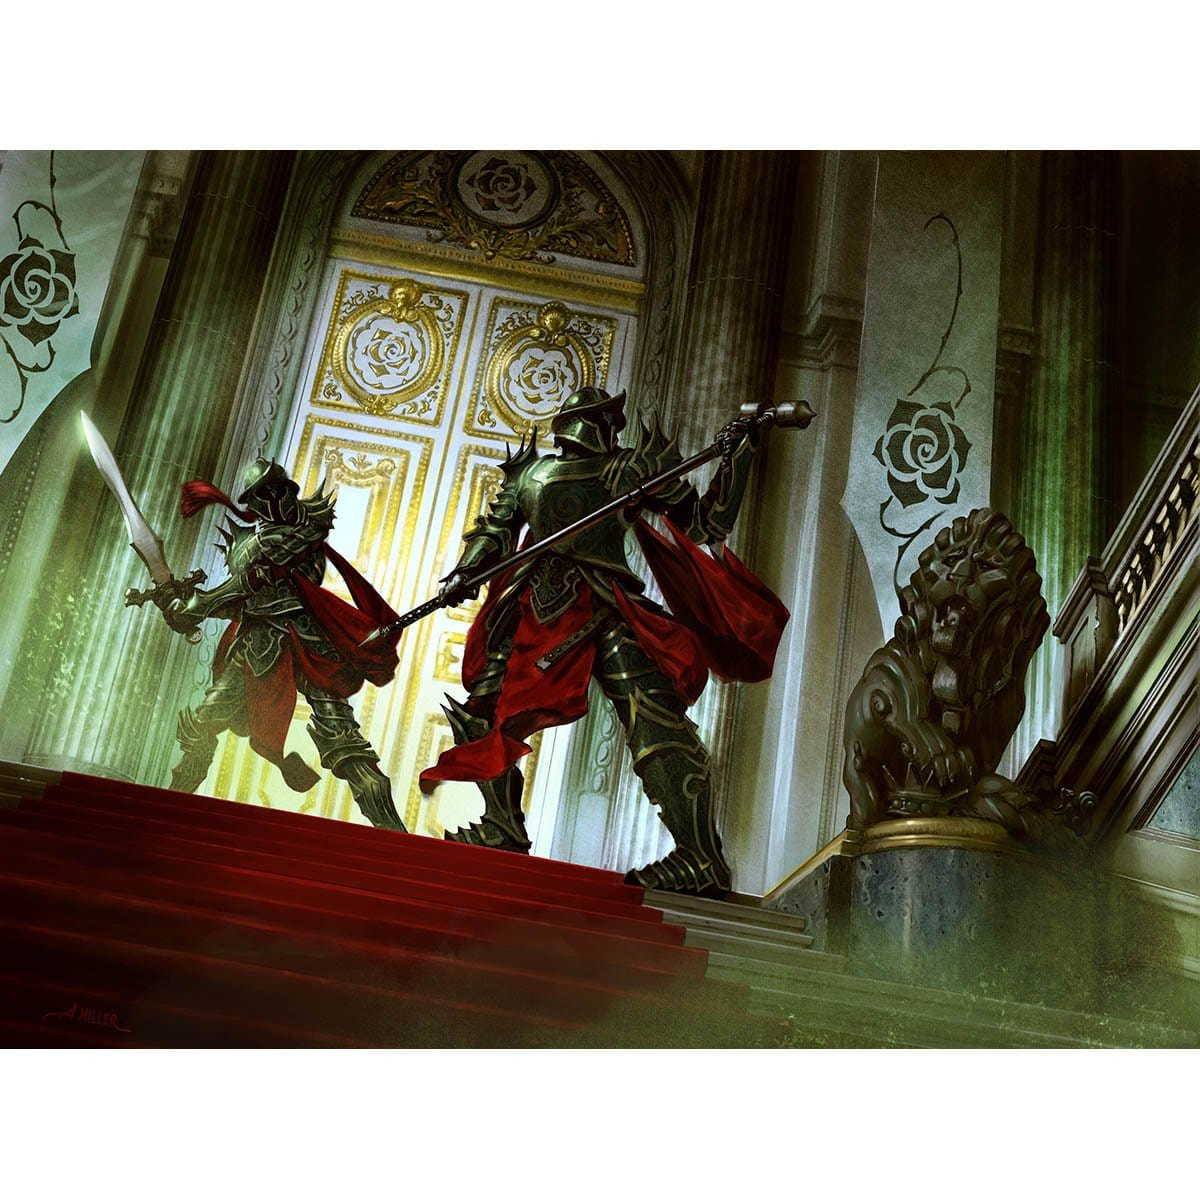 Palace Sentinels Print - Print - Original Magic Art - Accessories for Magic the Gathering and other card games